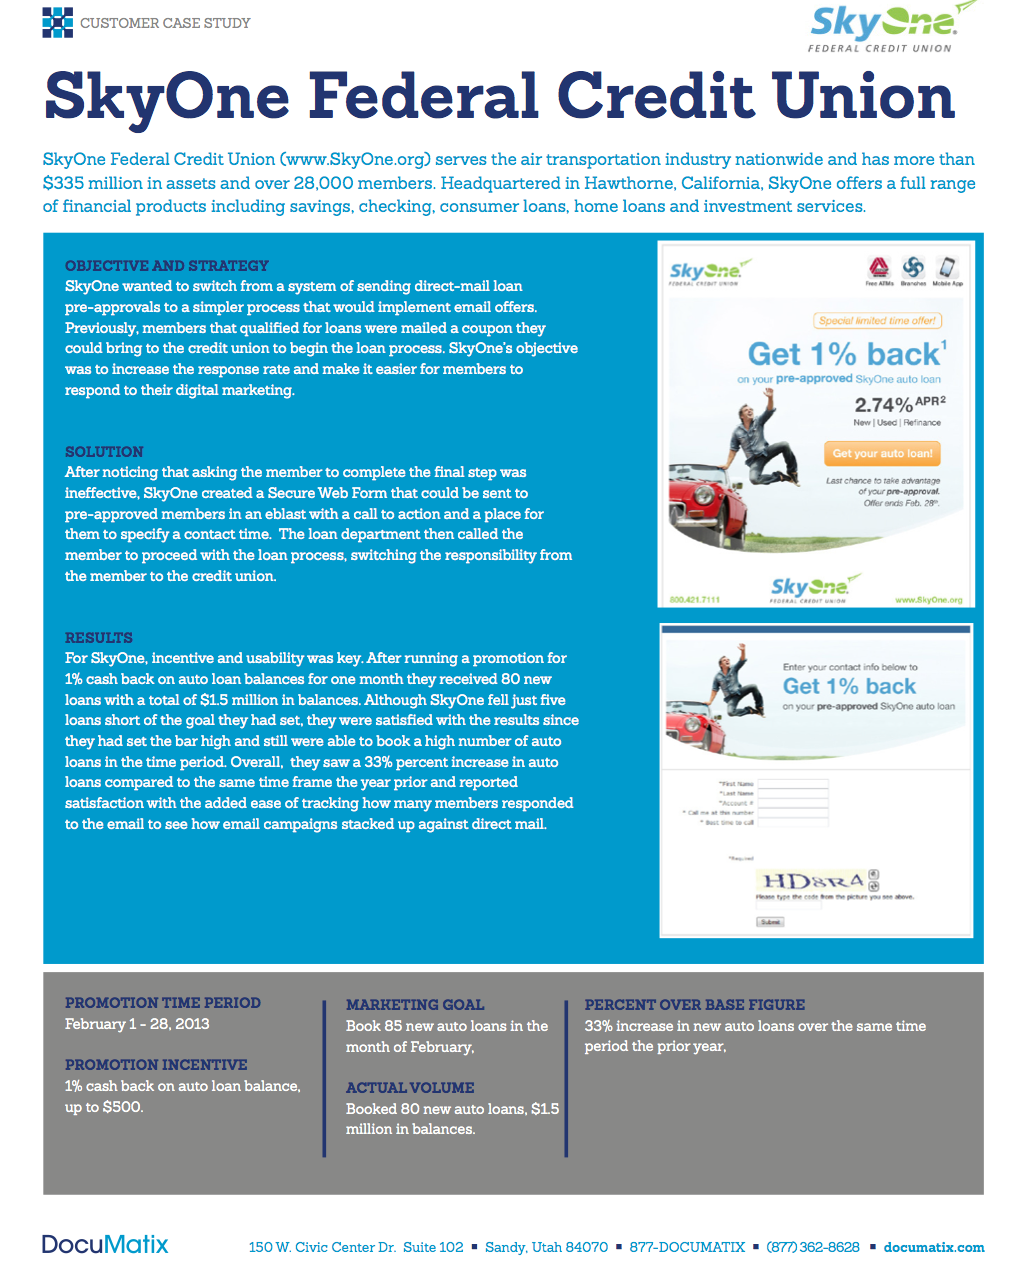 Case Study: Using Web Forms for Pre-Approval Campaigns